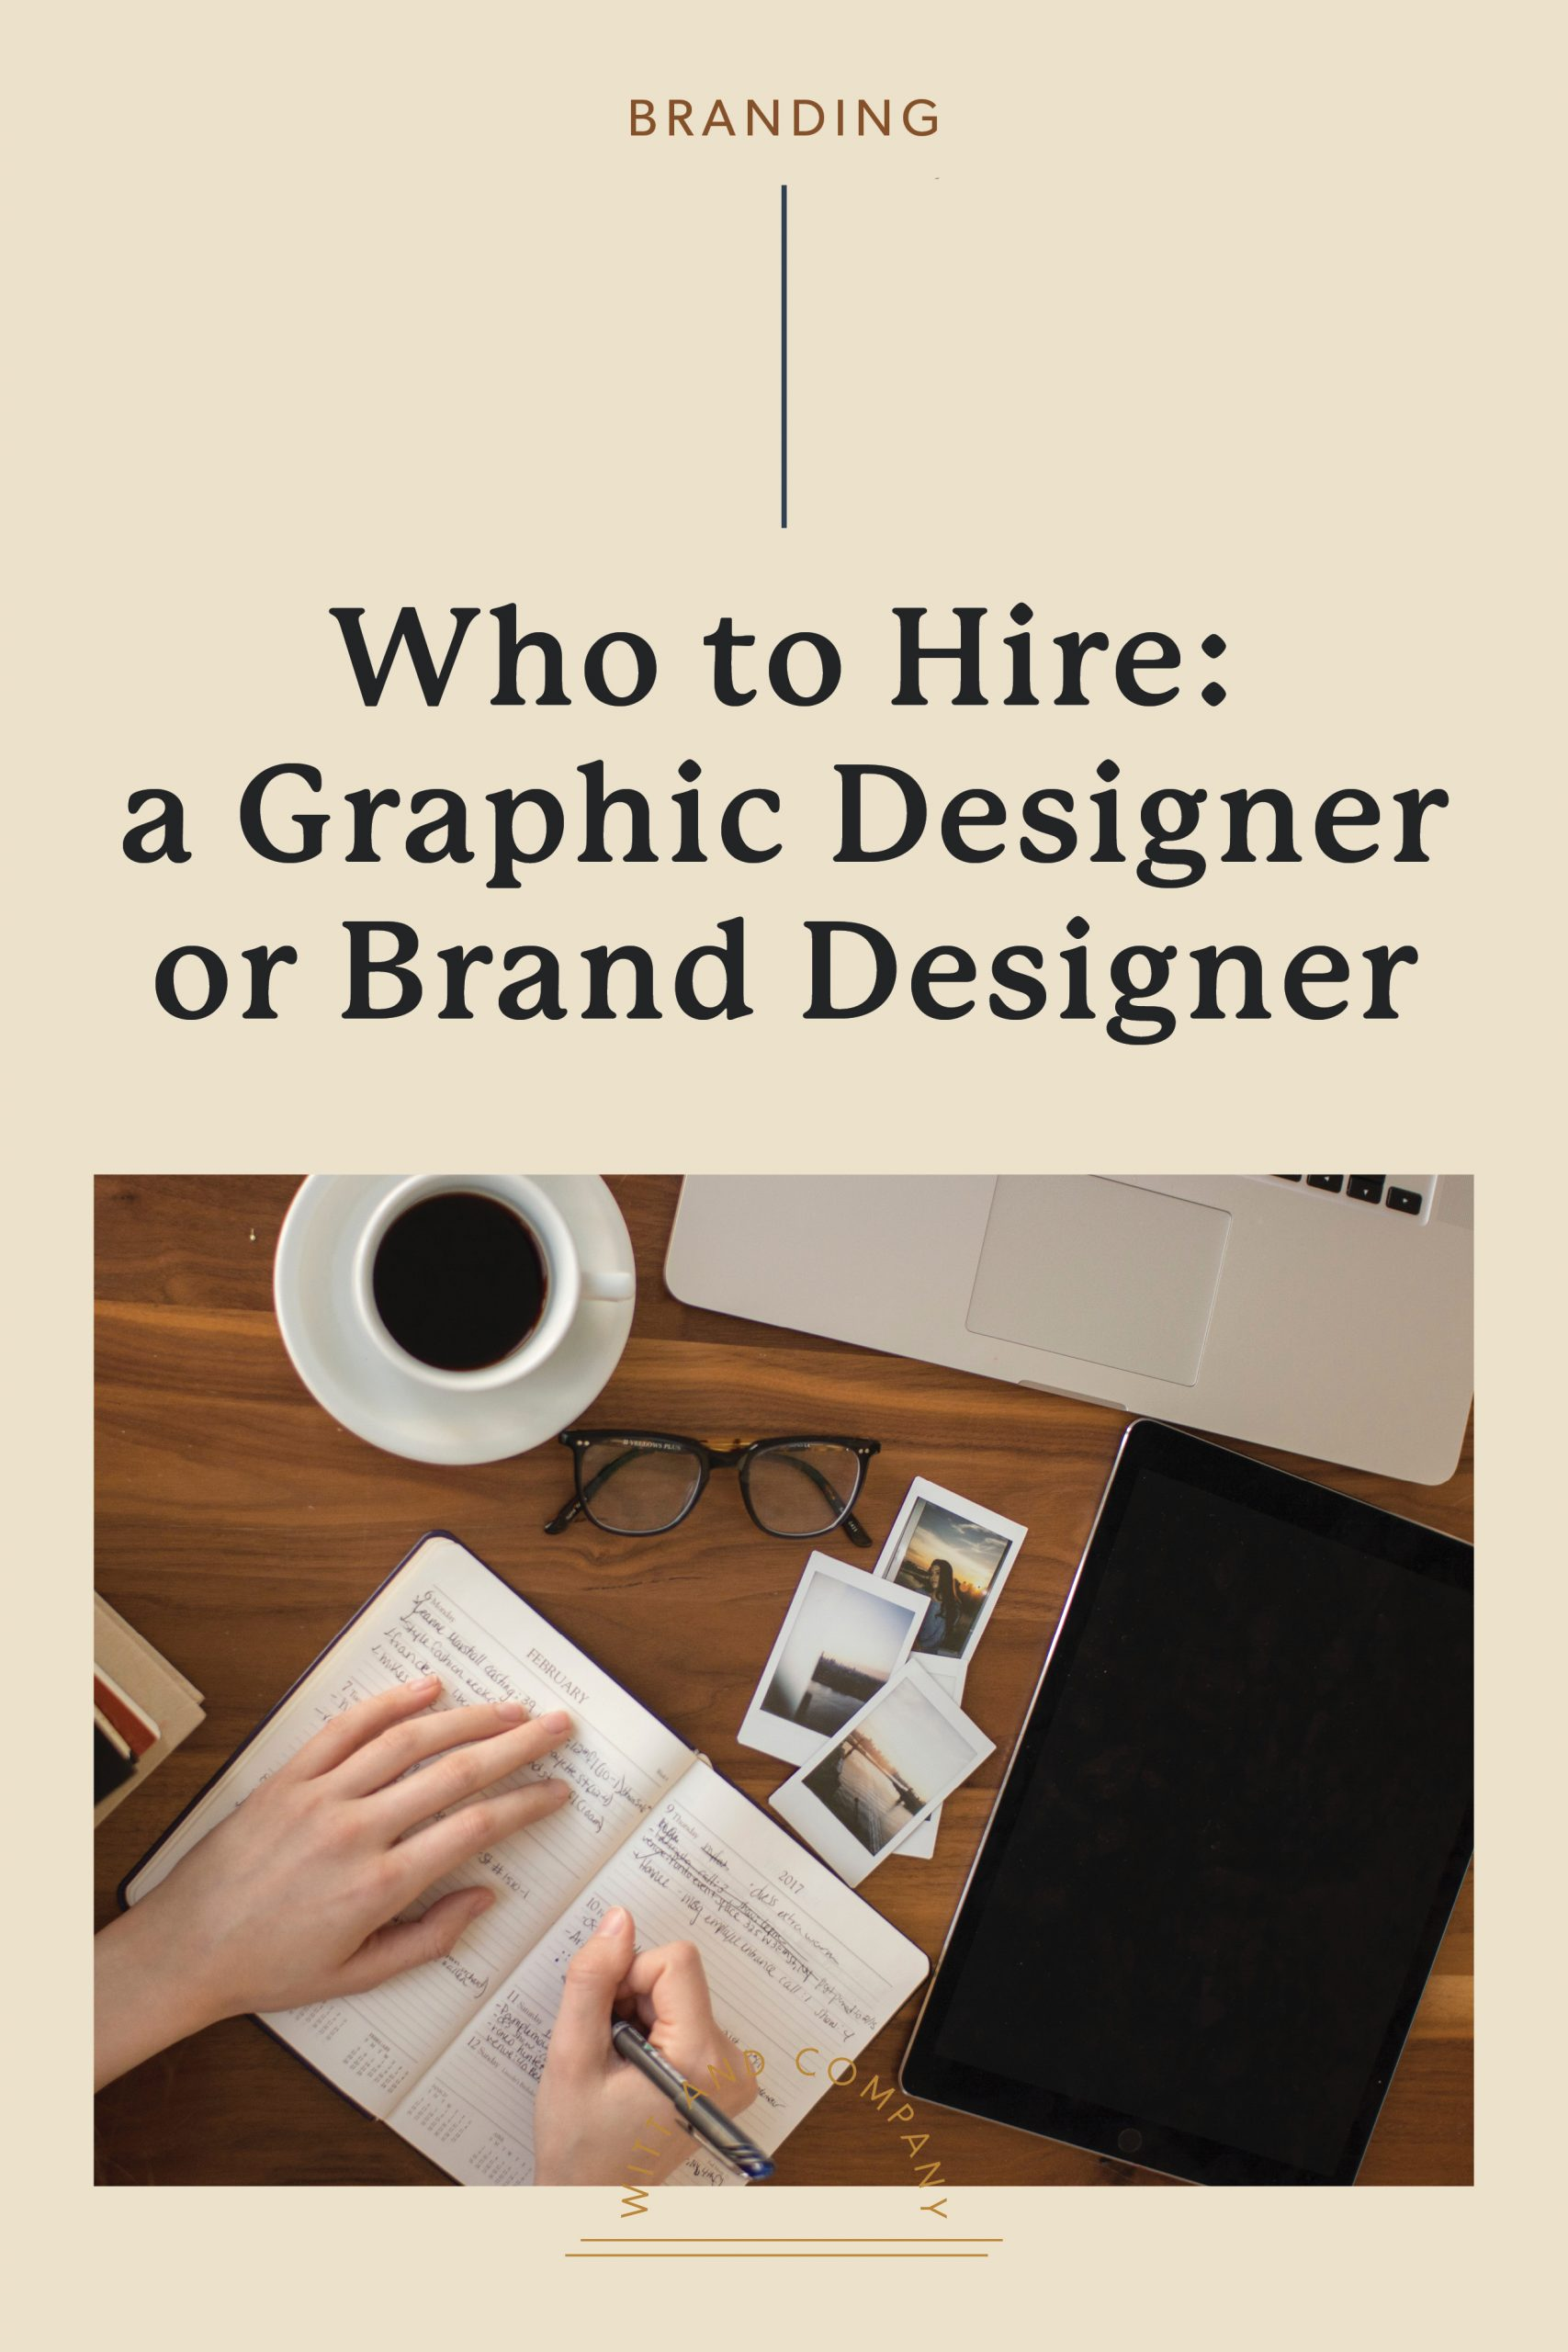 What's the Difference Between a Graphic Designer, a Brand Strategist and Brand Designer?